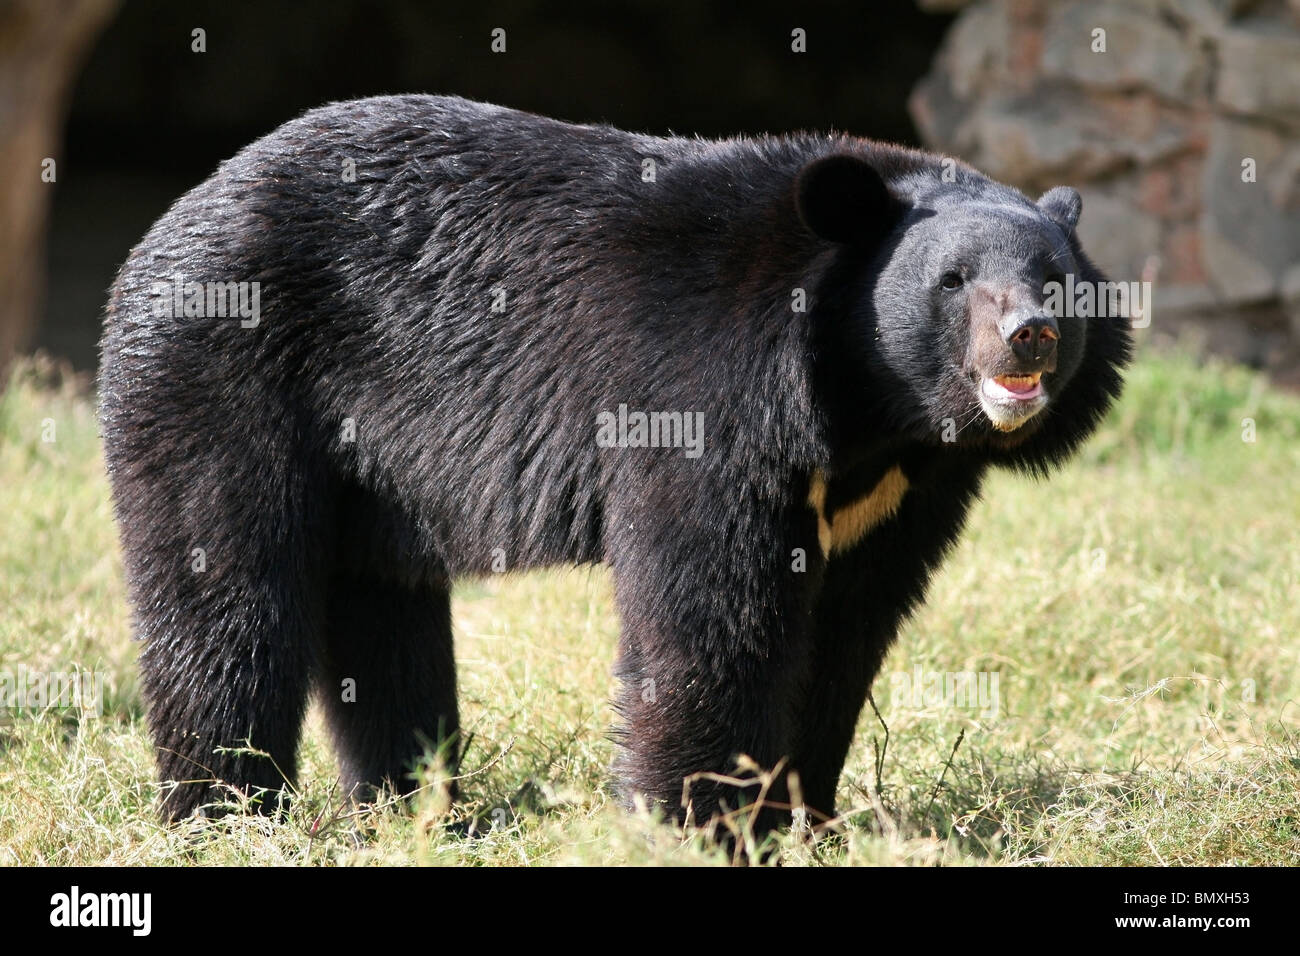 Asiatic Black Bear standing in its enclosure. Picture taken in New Delhi Zoo, India - Stock Image